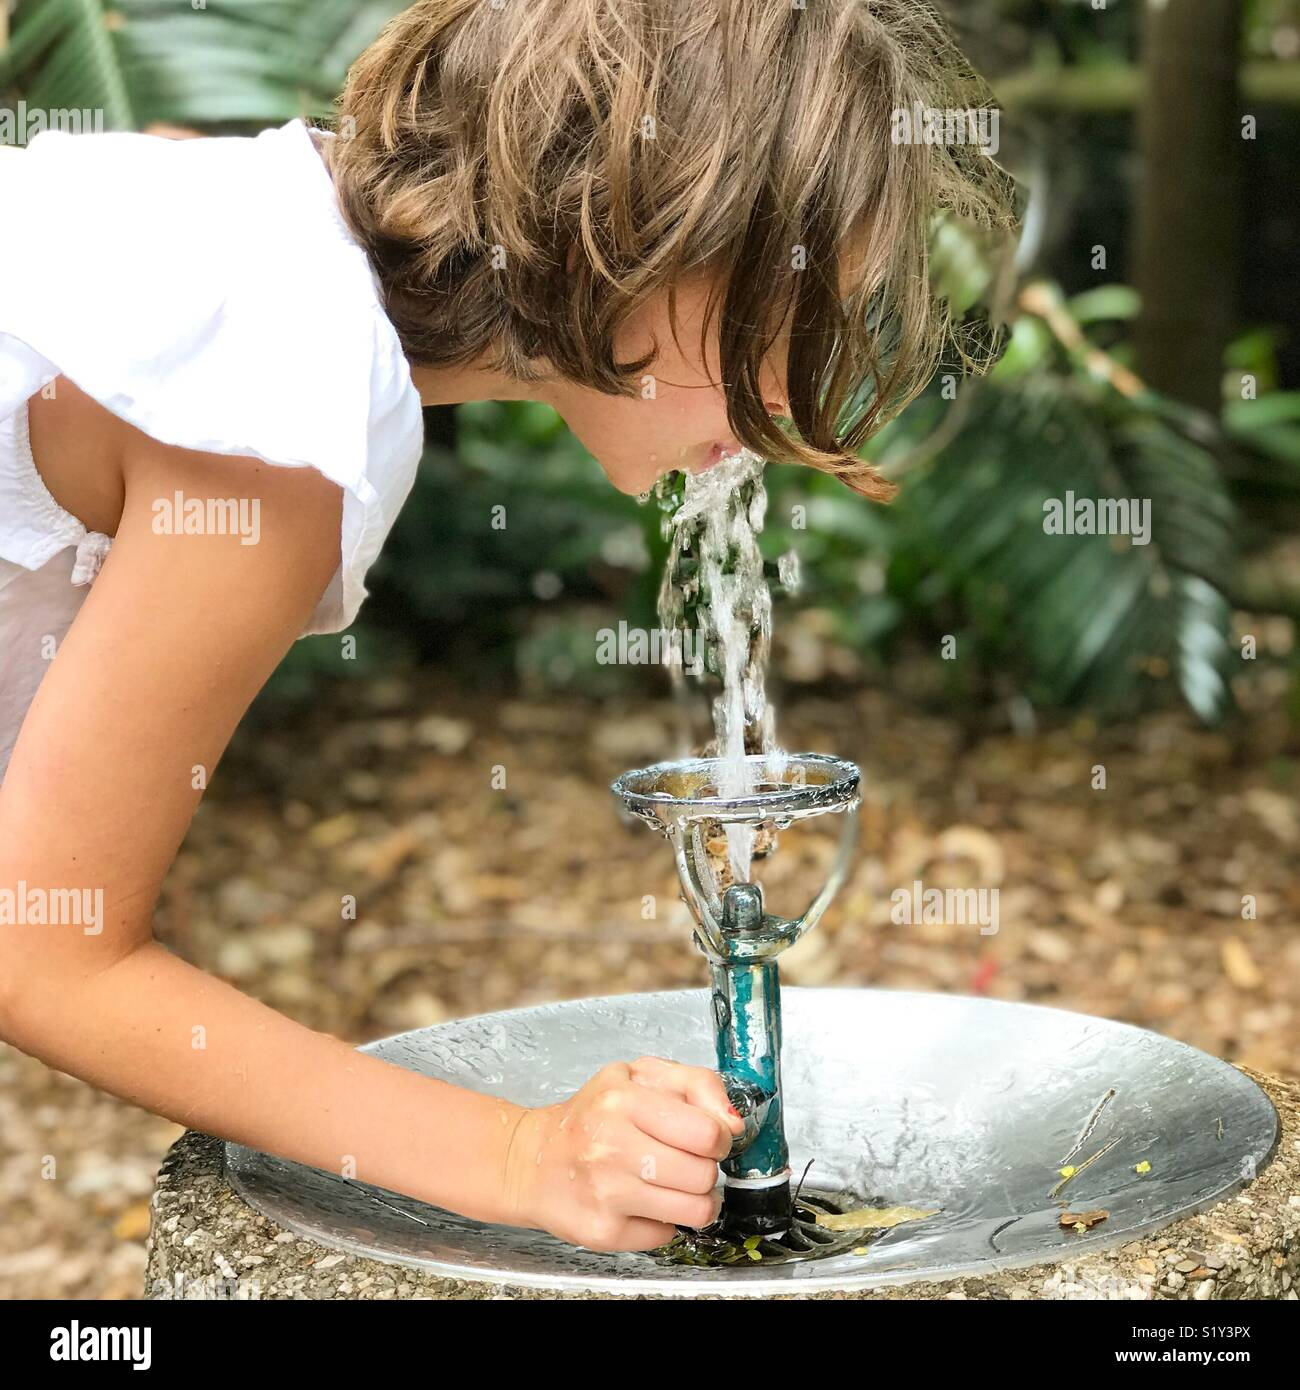 Young girl drinking at water fountain - Stock Image